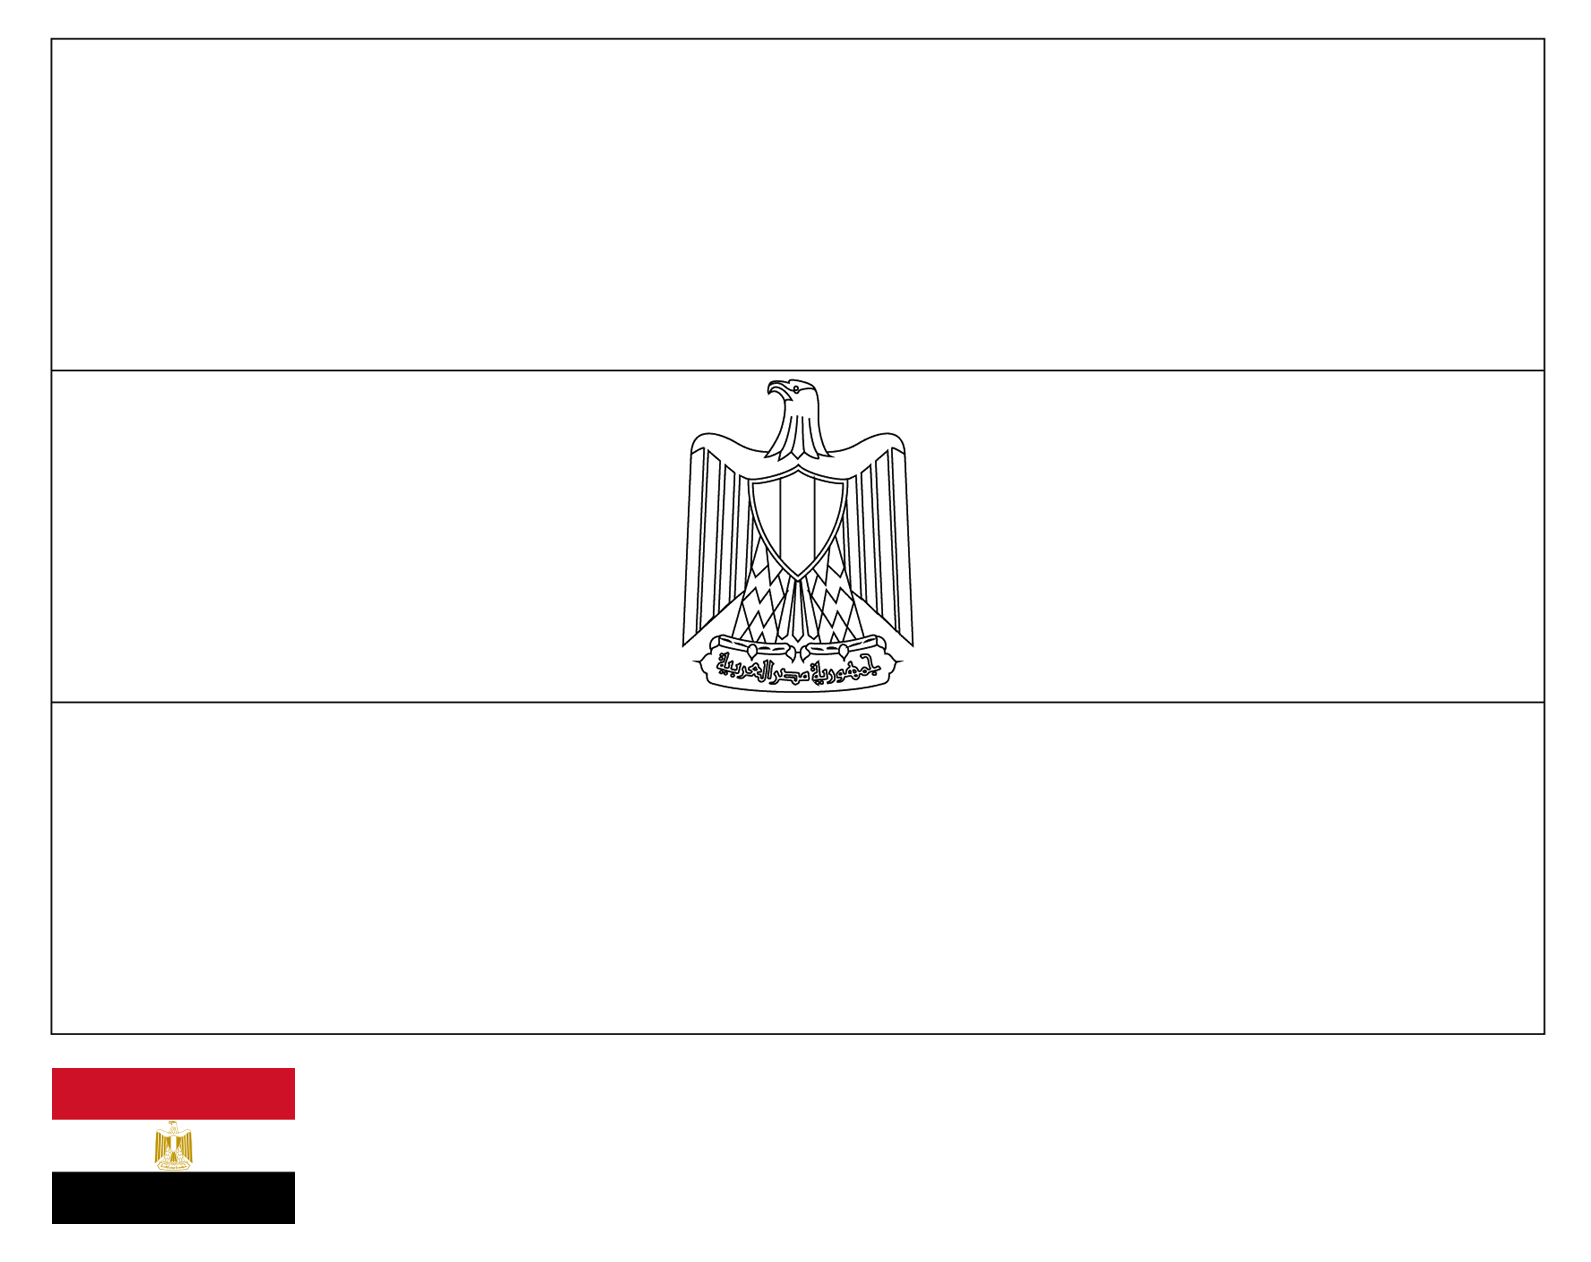 egypt flag coloring egypt flag coloring page coloring home egypt flag coloring